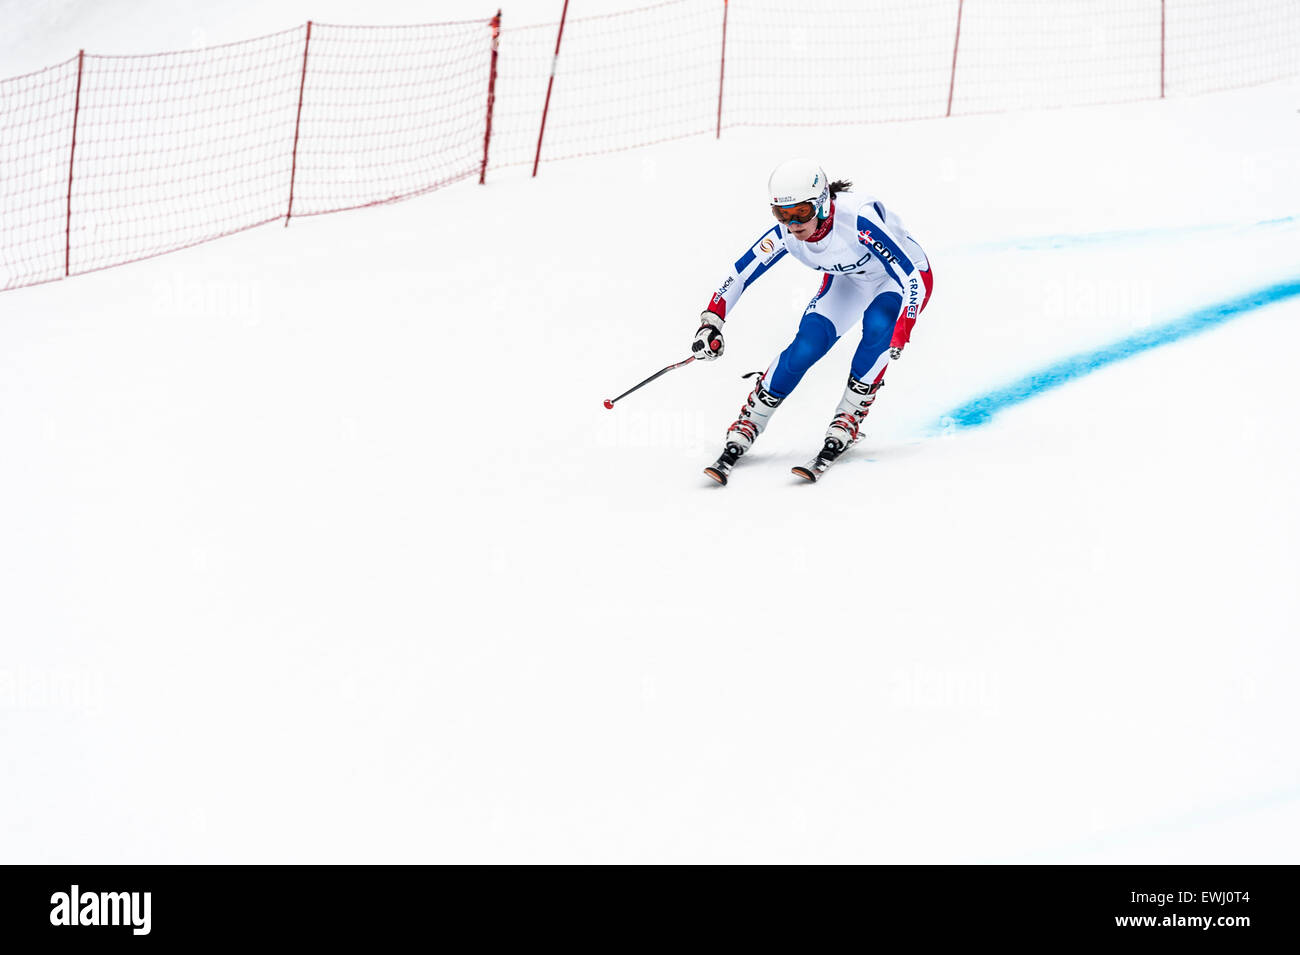 A disabled competitor, with left lower arm amputated, racing downhill in a giant slalom race - Stock Image